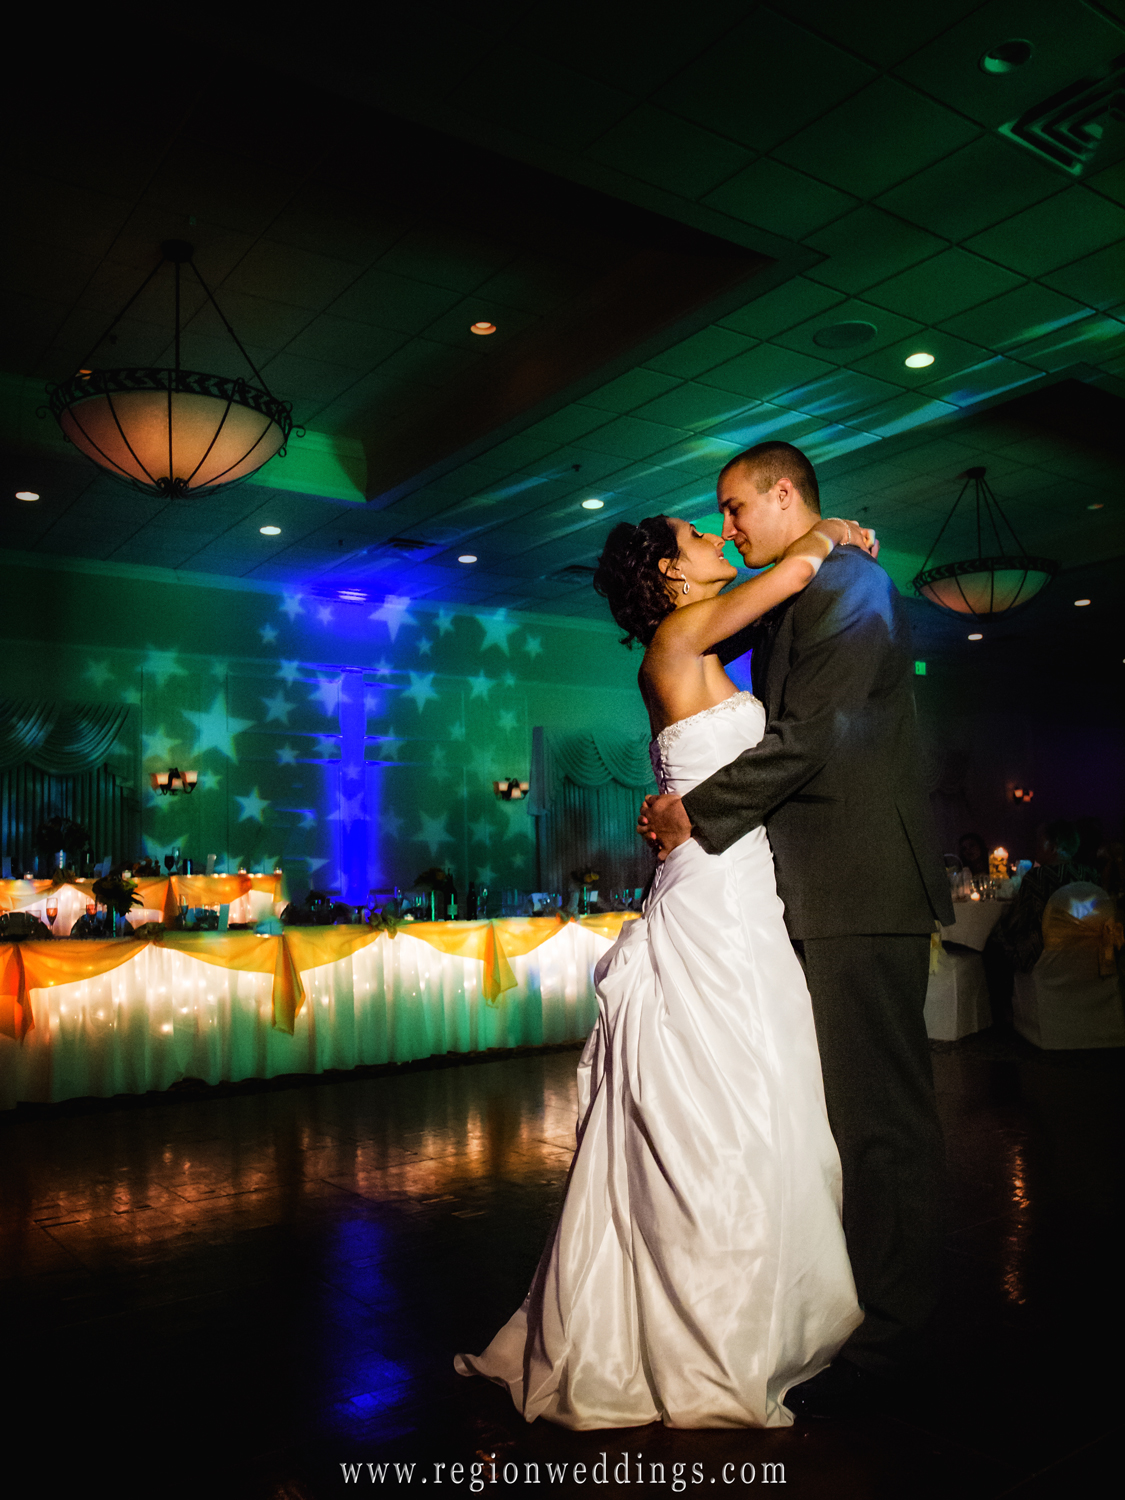 The bride and groom take their first dance at the Banquets of St. George in Schererville, Indiana during their wedding reception.